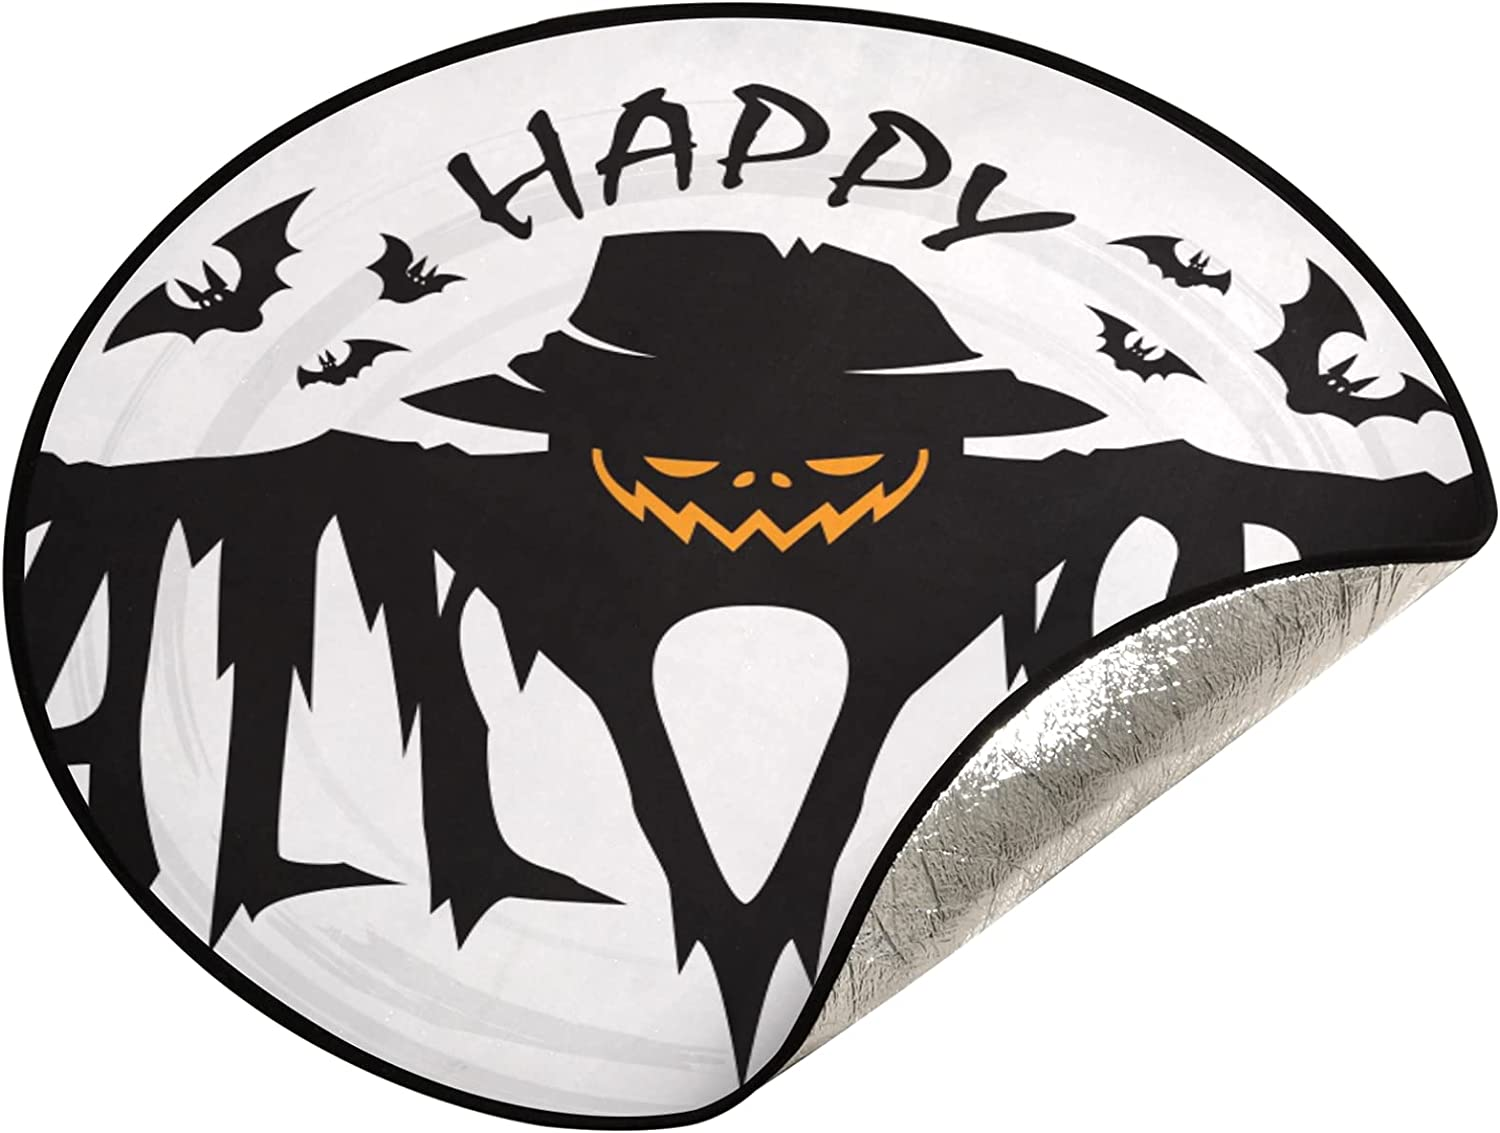 xigua 28.3 Inch Christmas Tree Stand Mat - Max 42% OFF New Shipping Free Shipping Happy Water Halloween